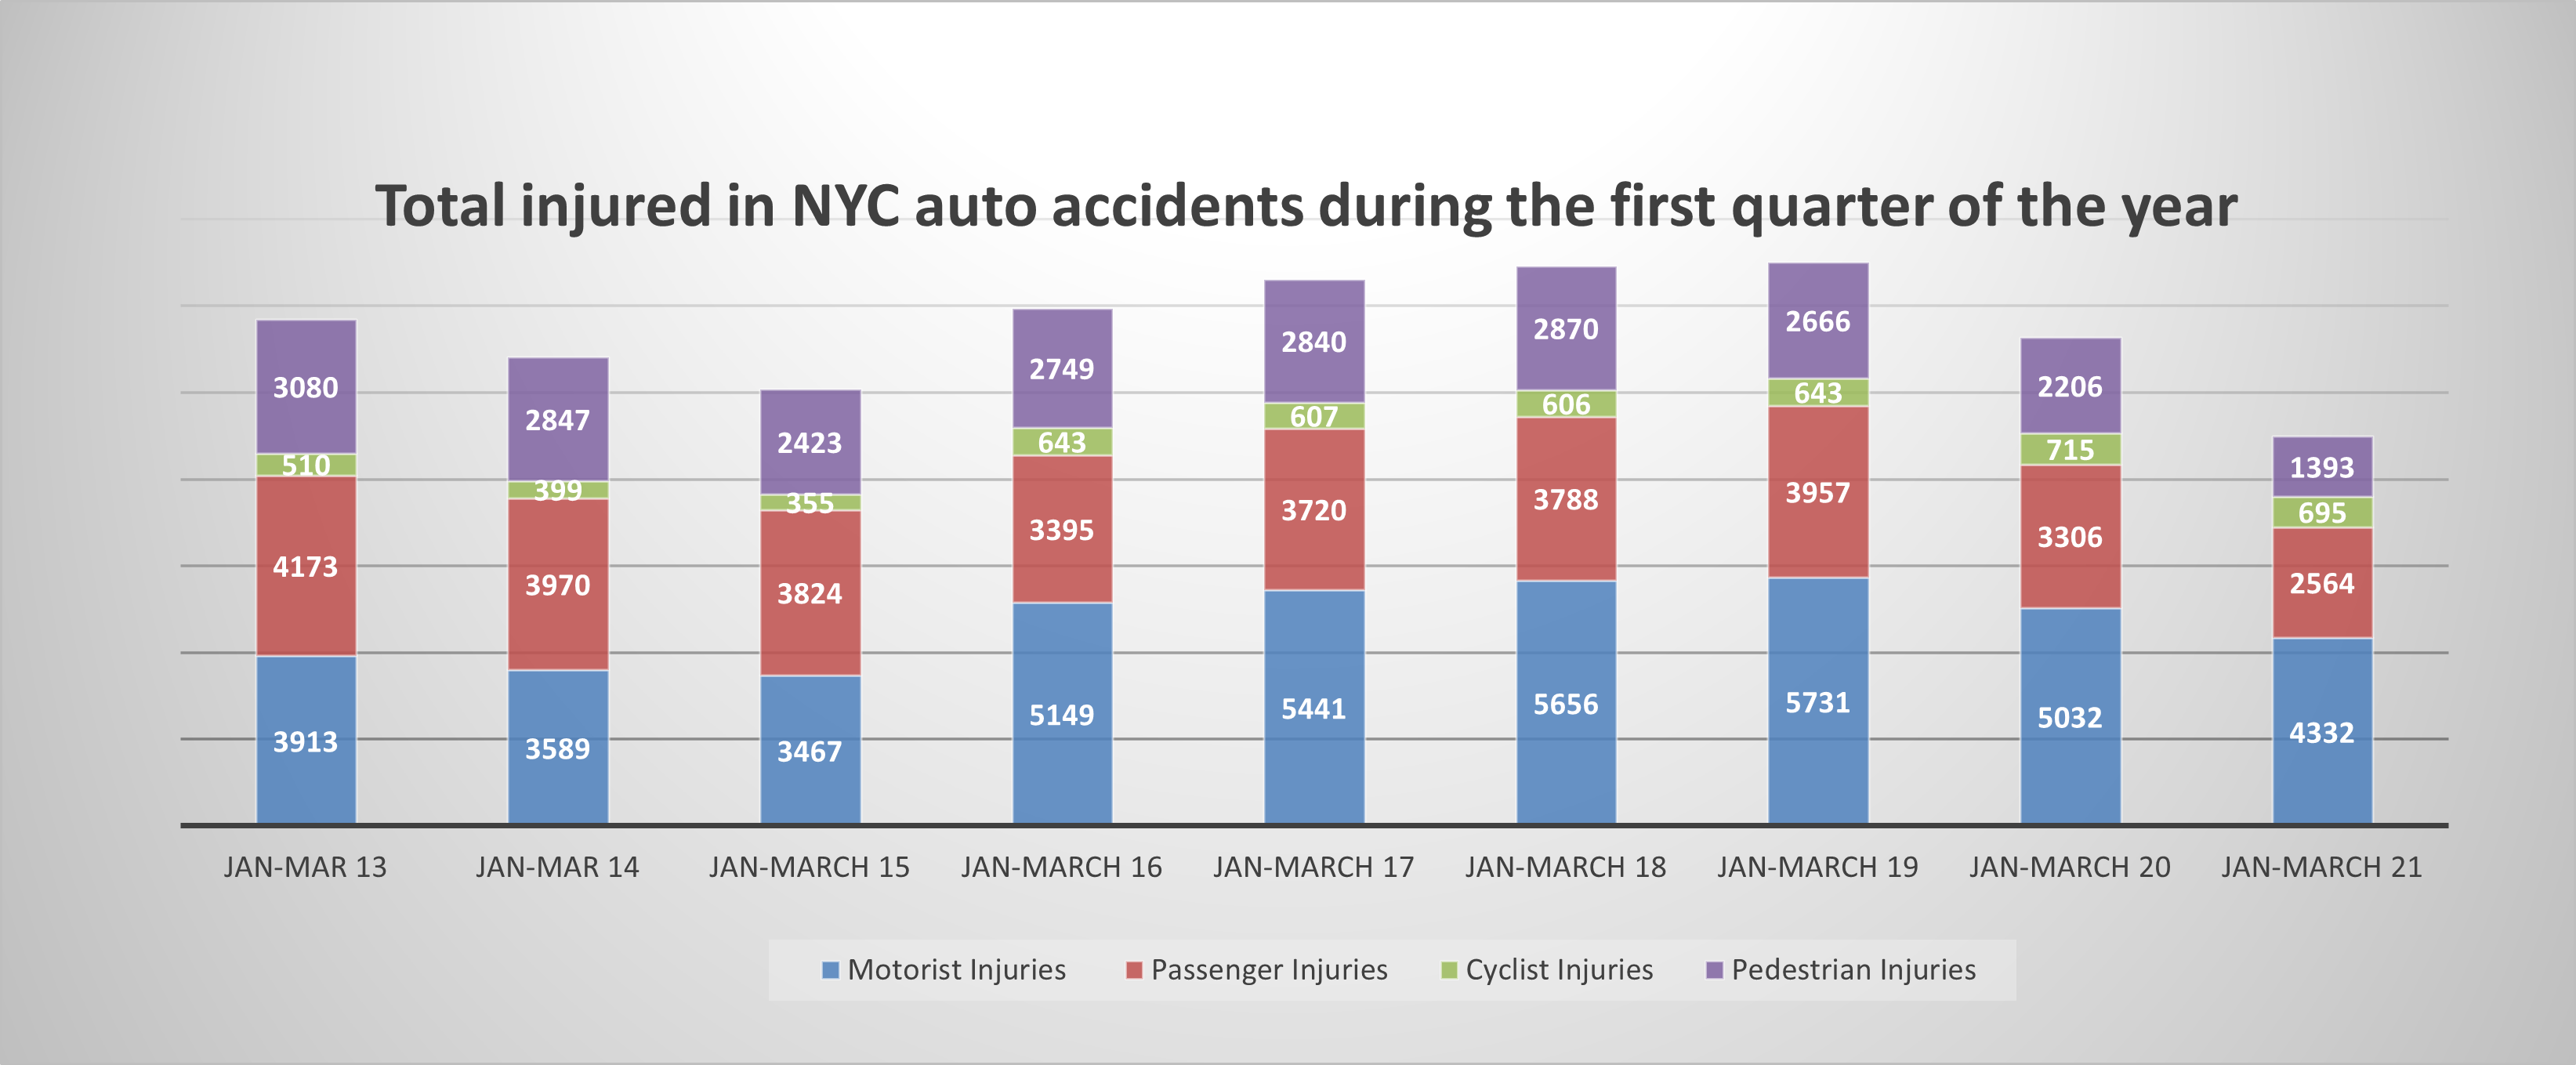 car accident injuries NYC Q1 2021